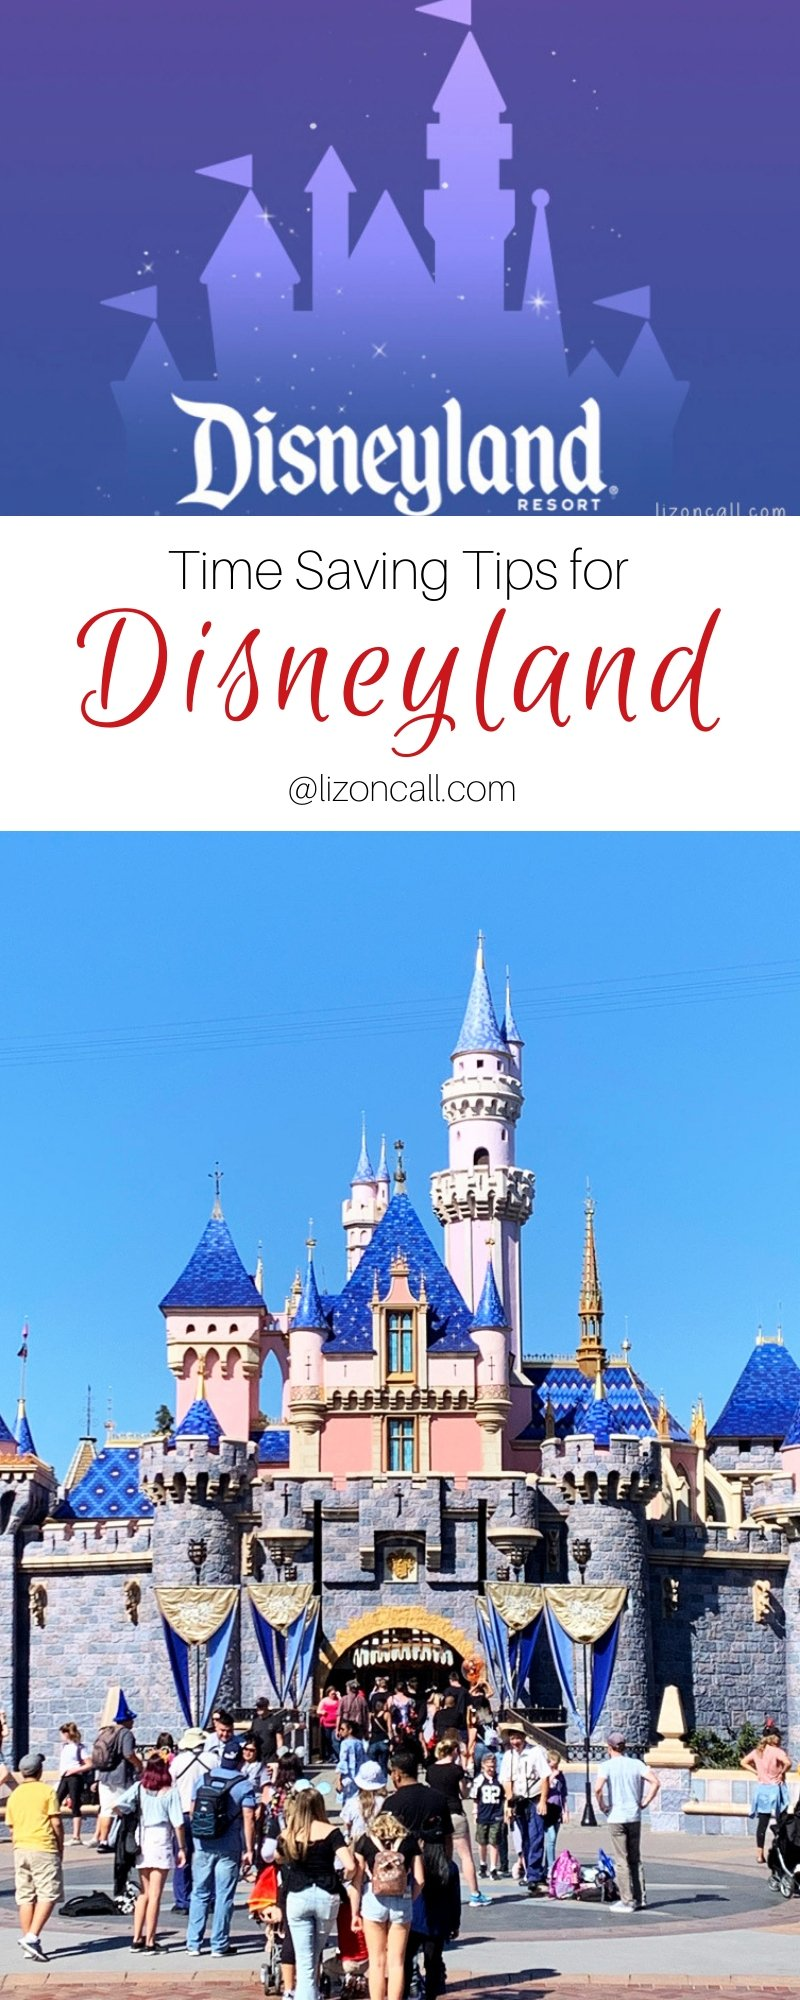 pinnable titled image Disneyland castle